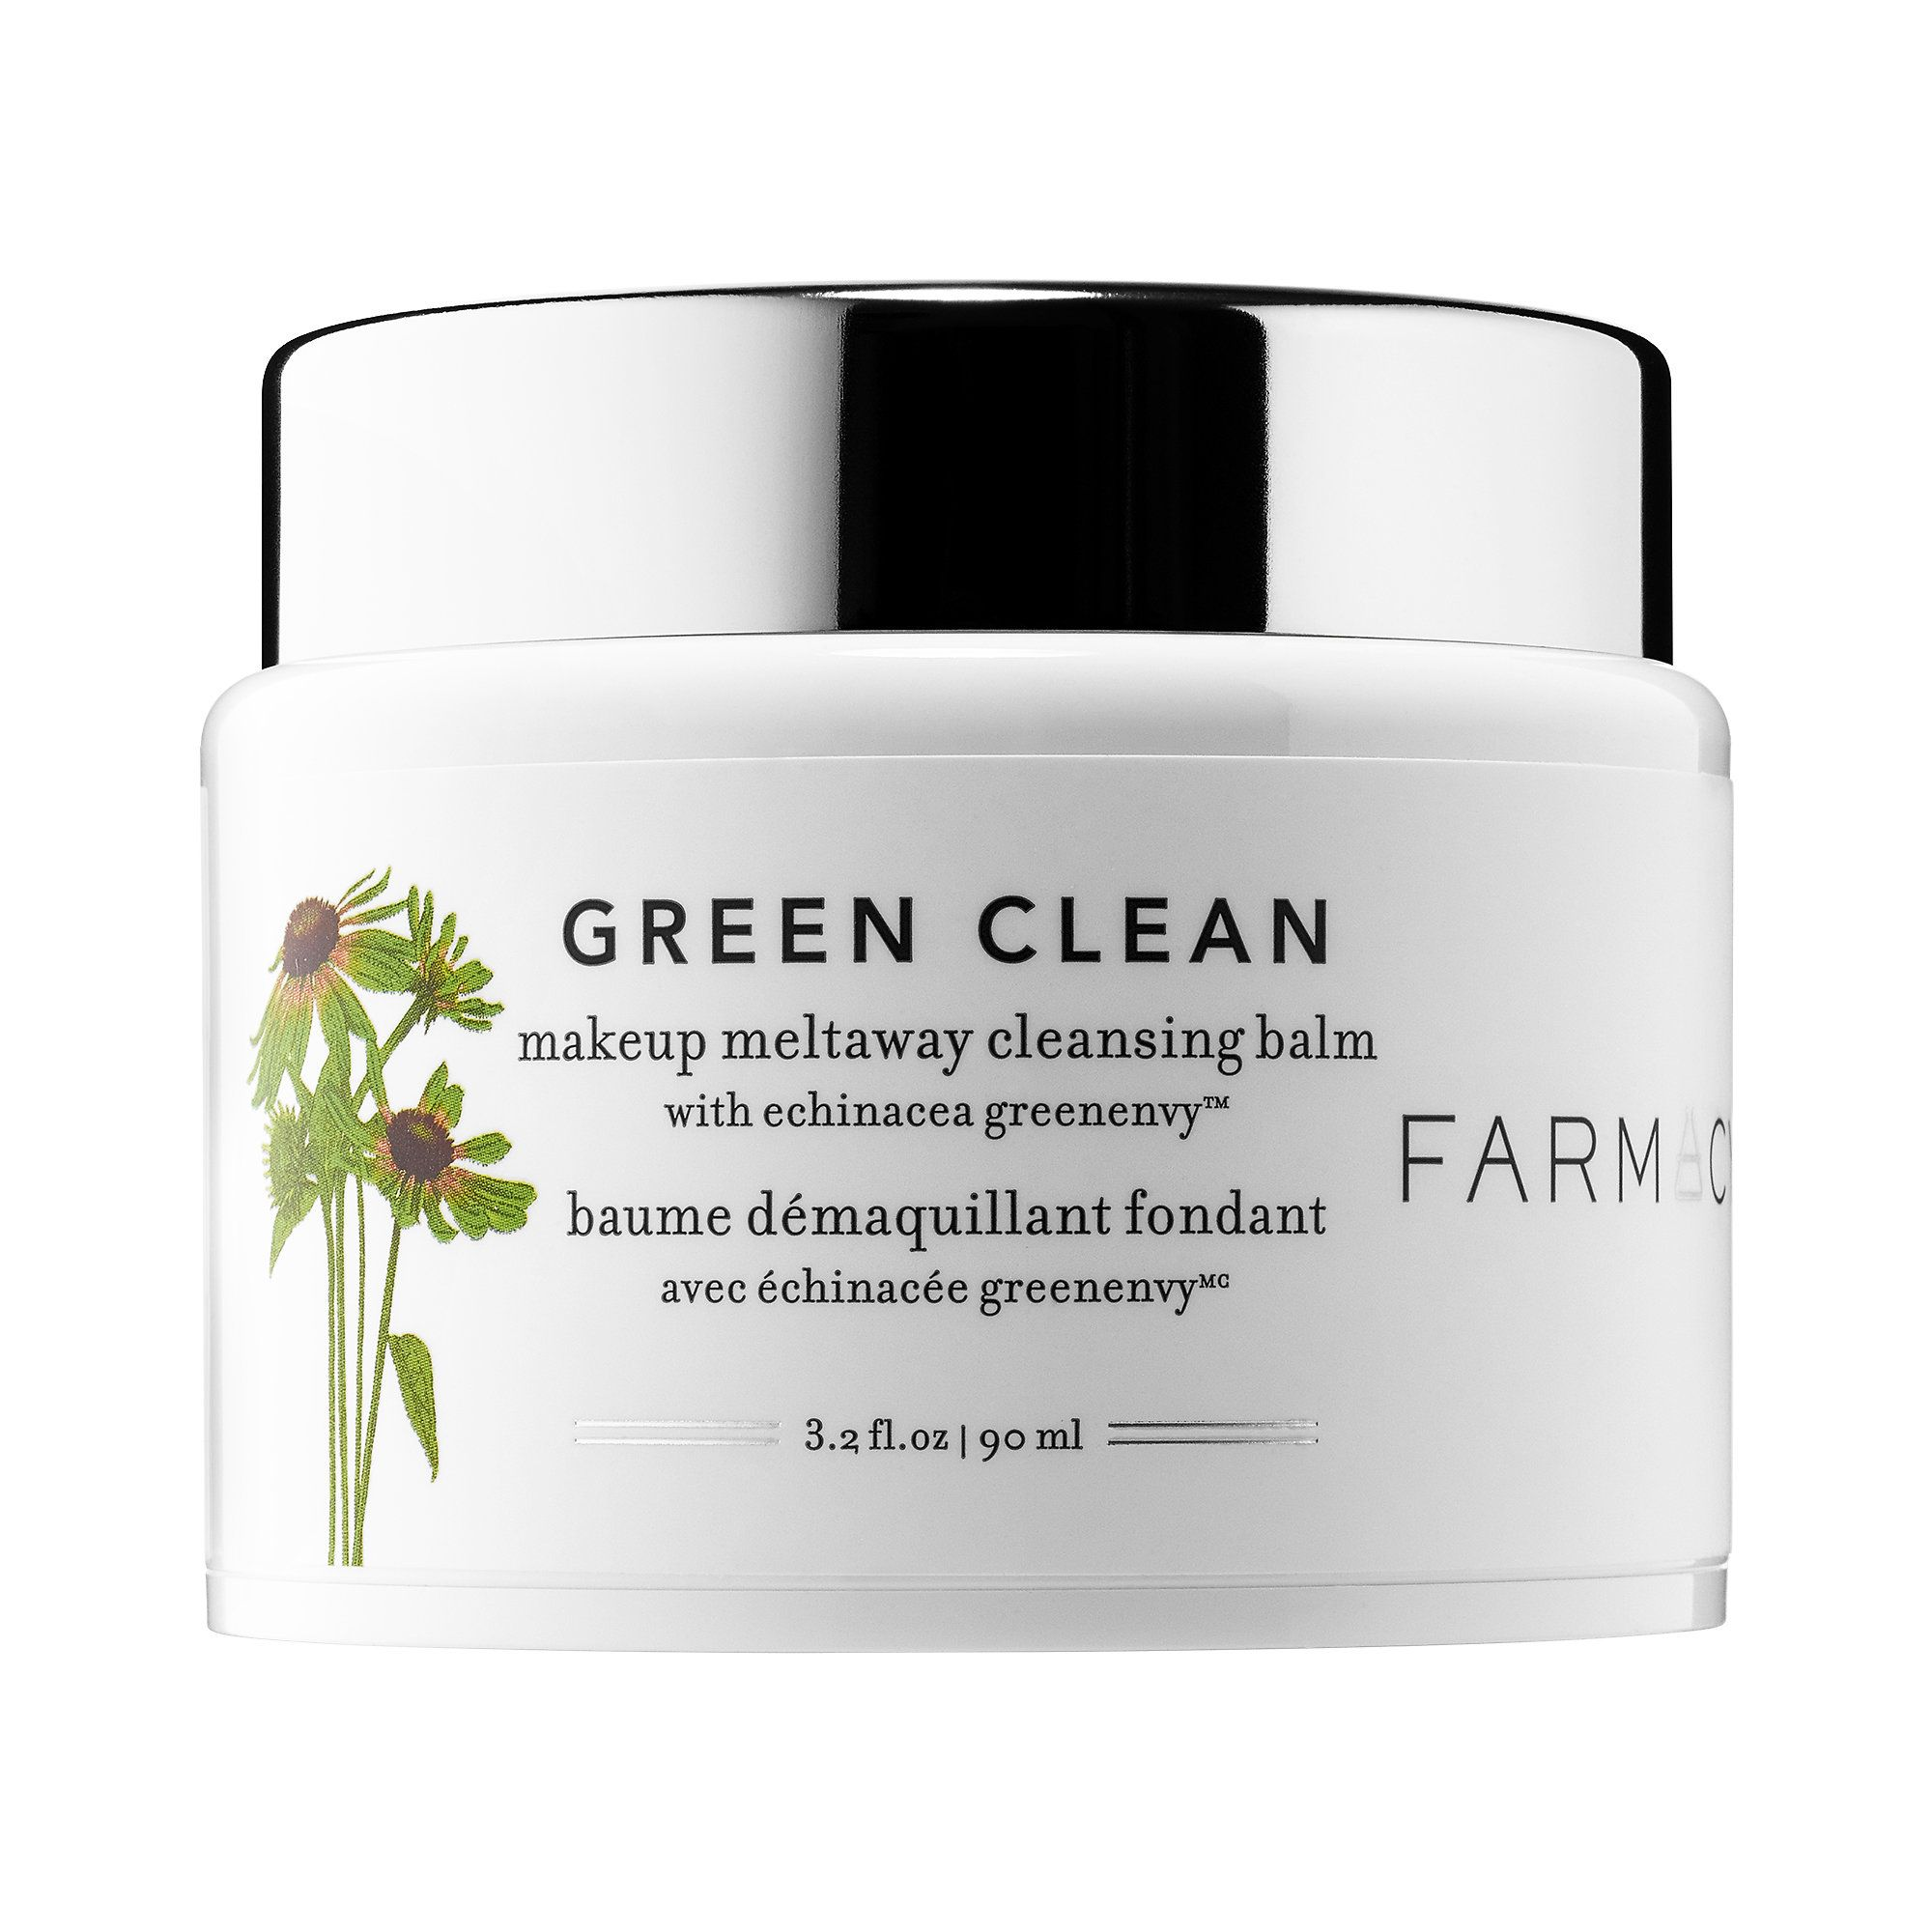 Green Clean Makeup Removing Cleansing Balm Farmacy